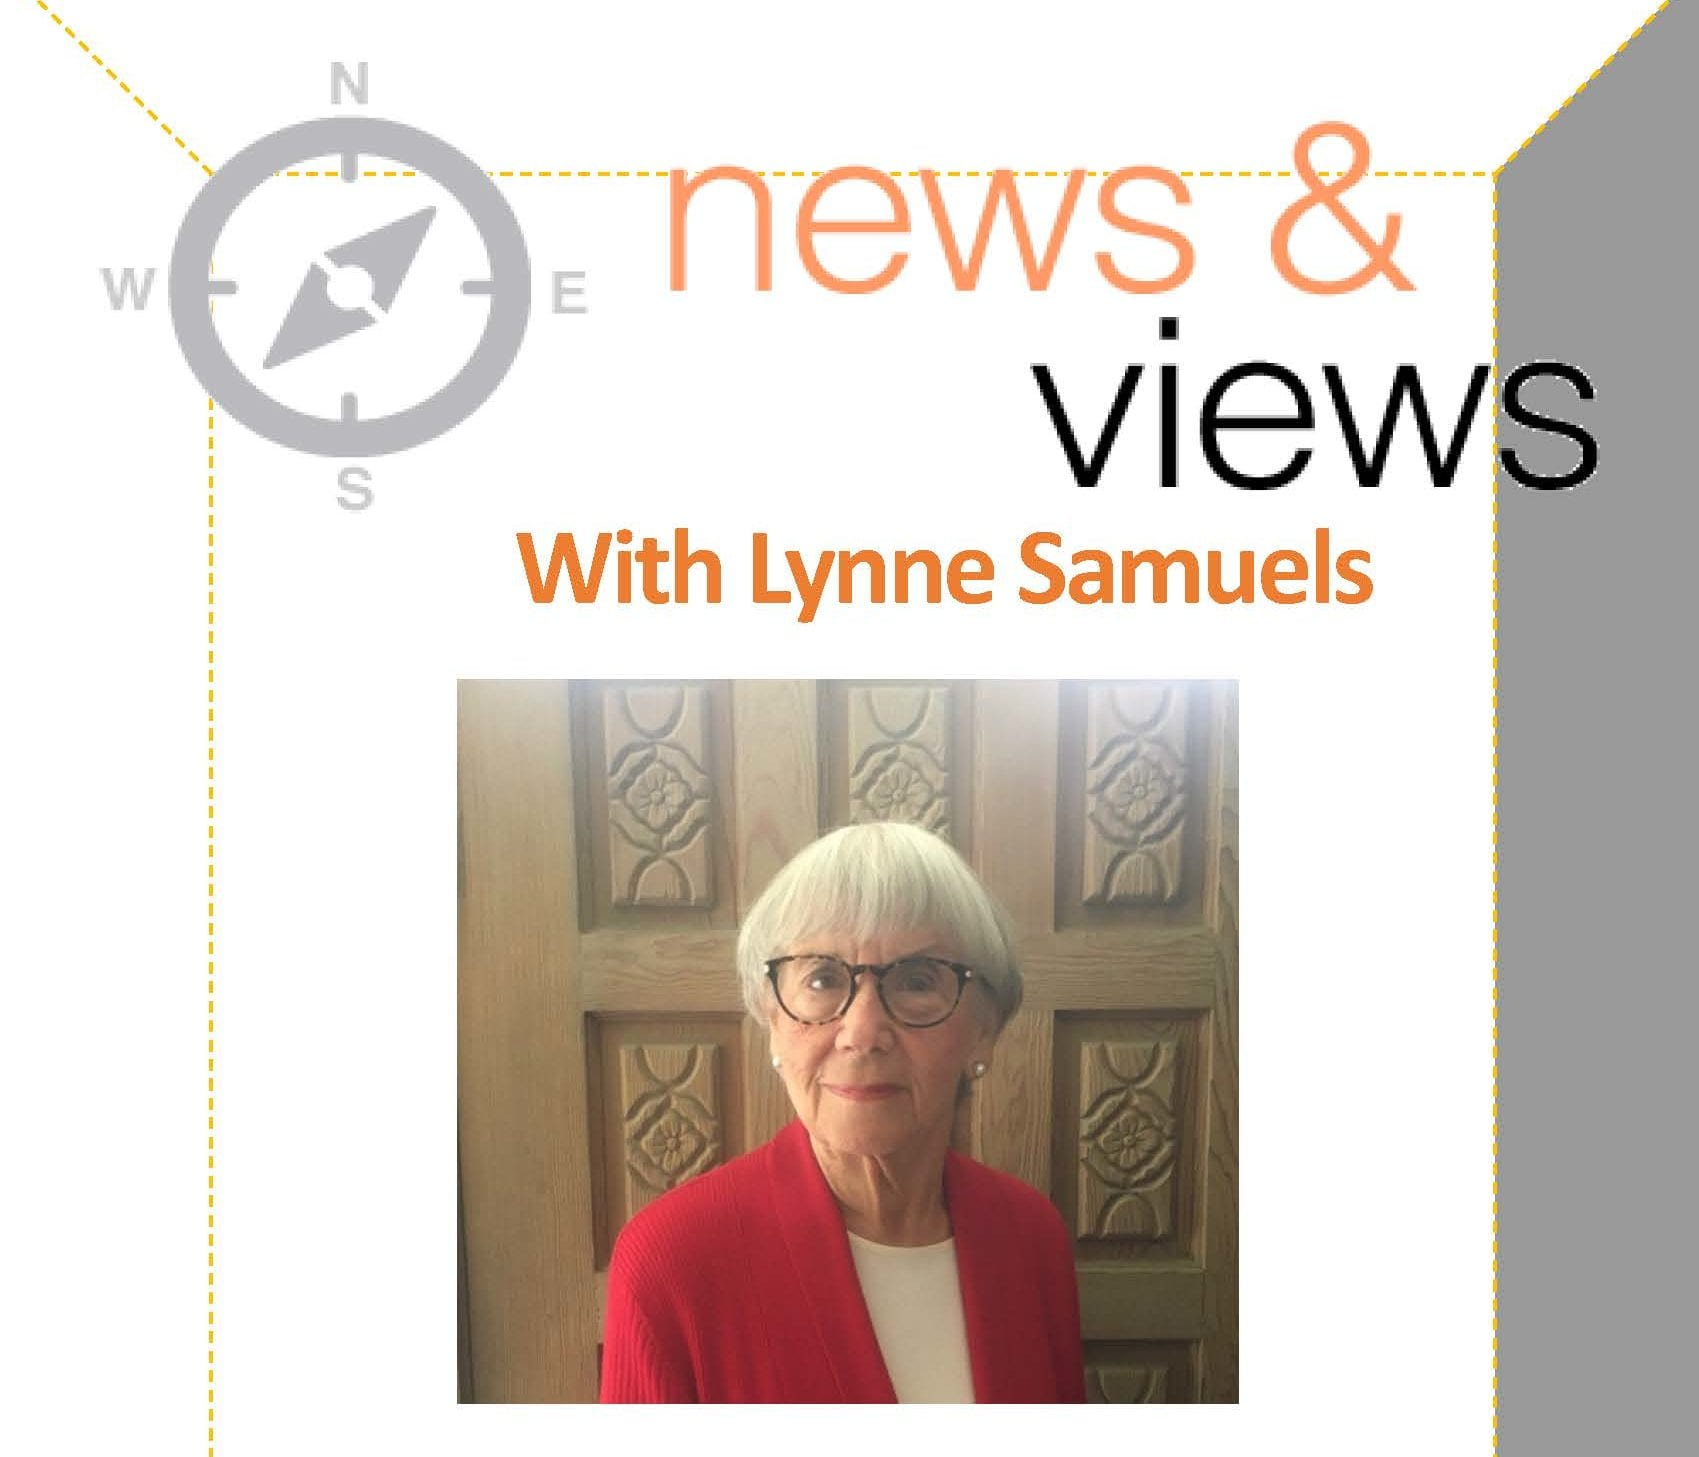 News & Views with Lynn - The Selfhelp Home